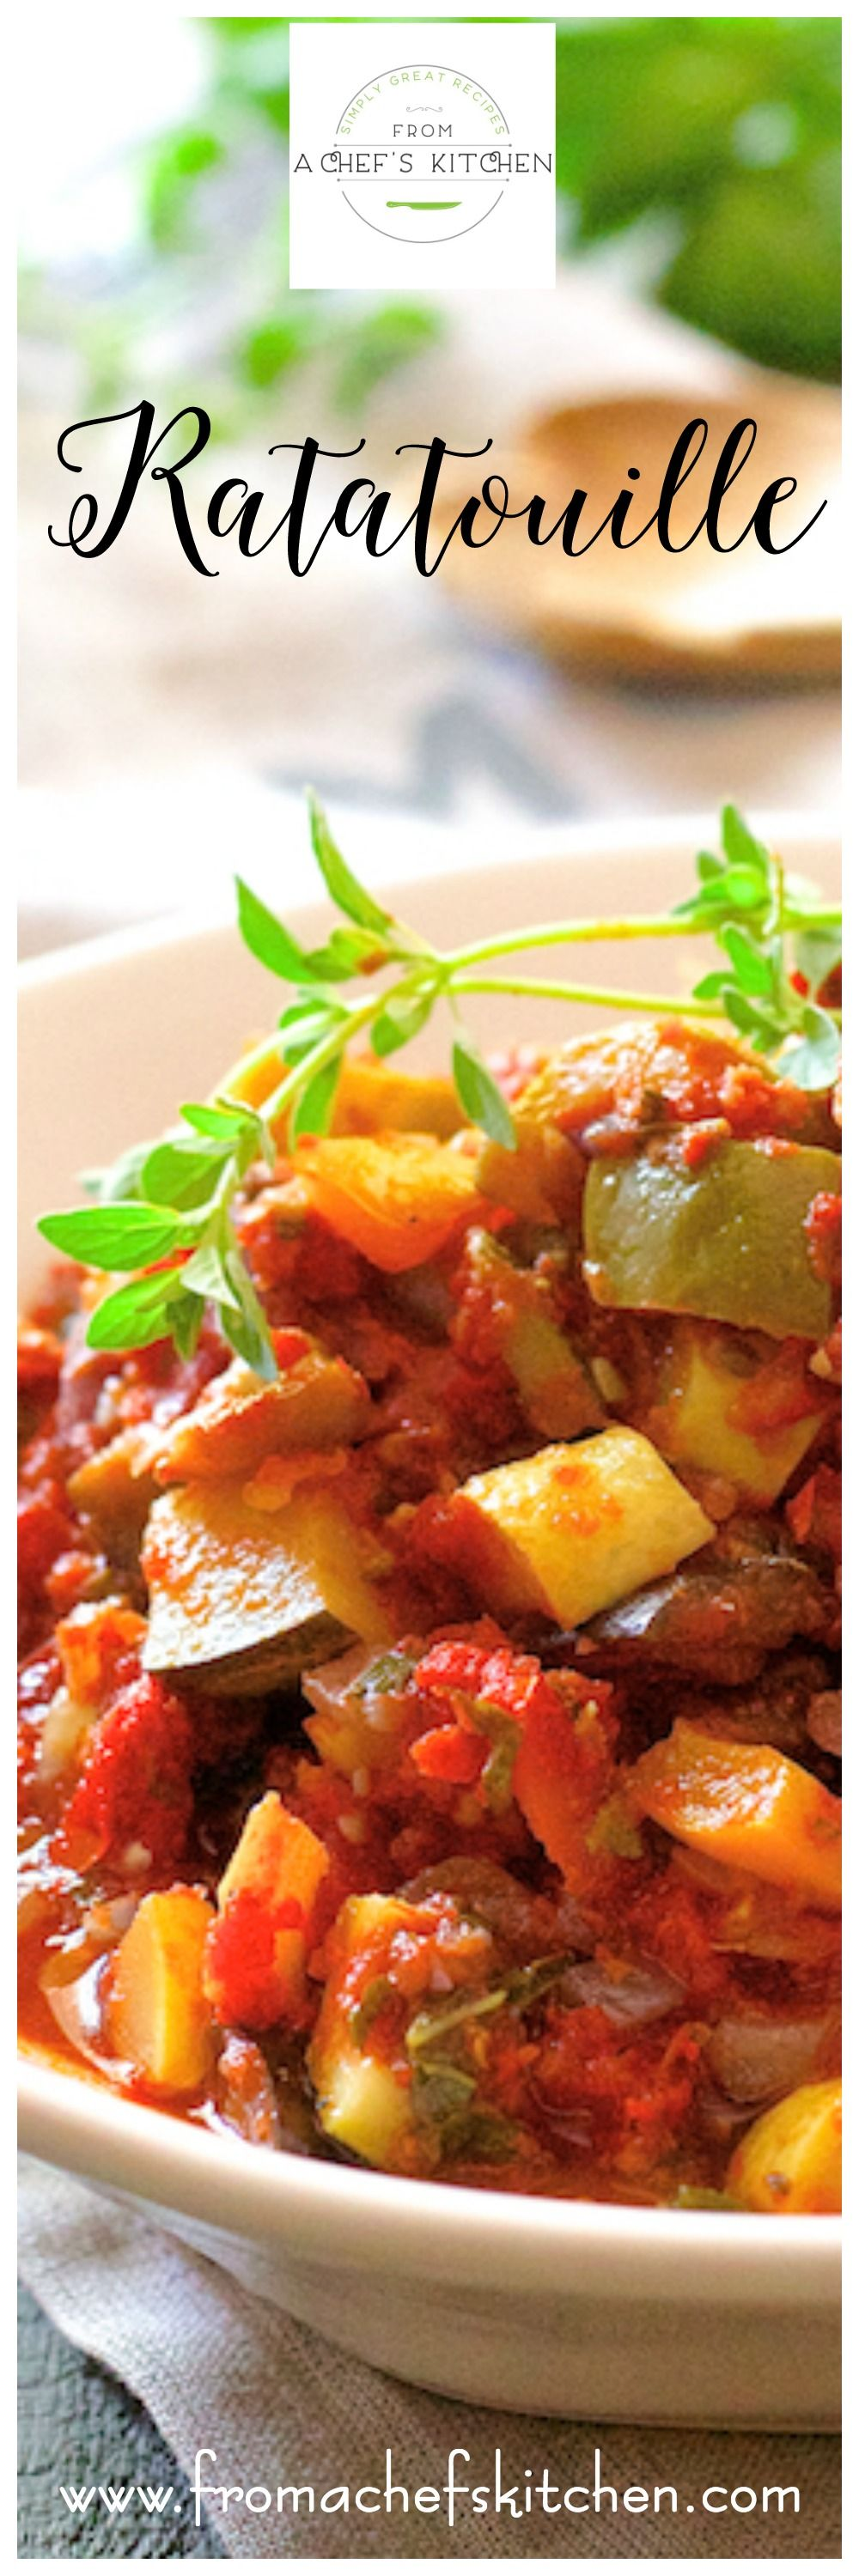 Provencal-inspired ratatouille is THE dish to make from a summer abundance every summer!